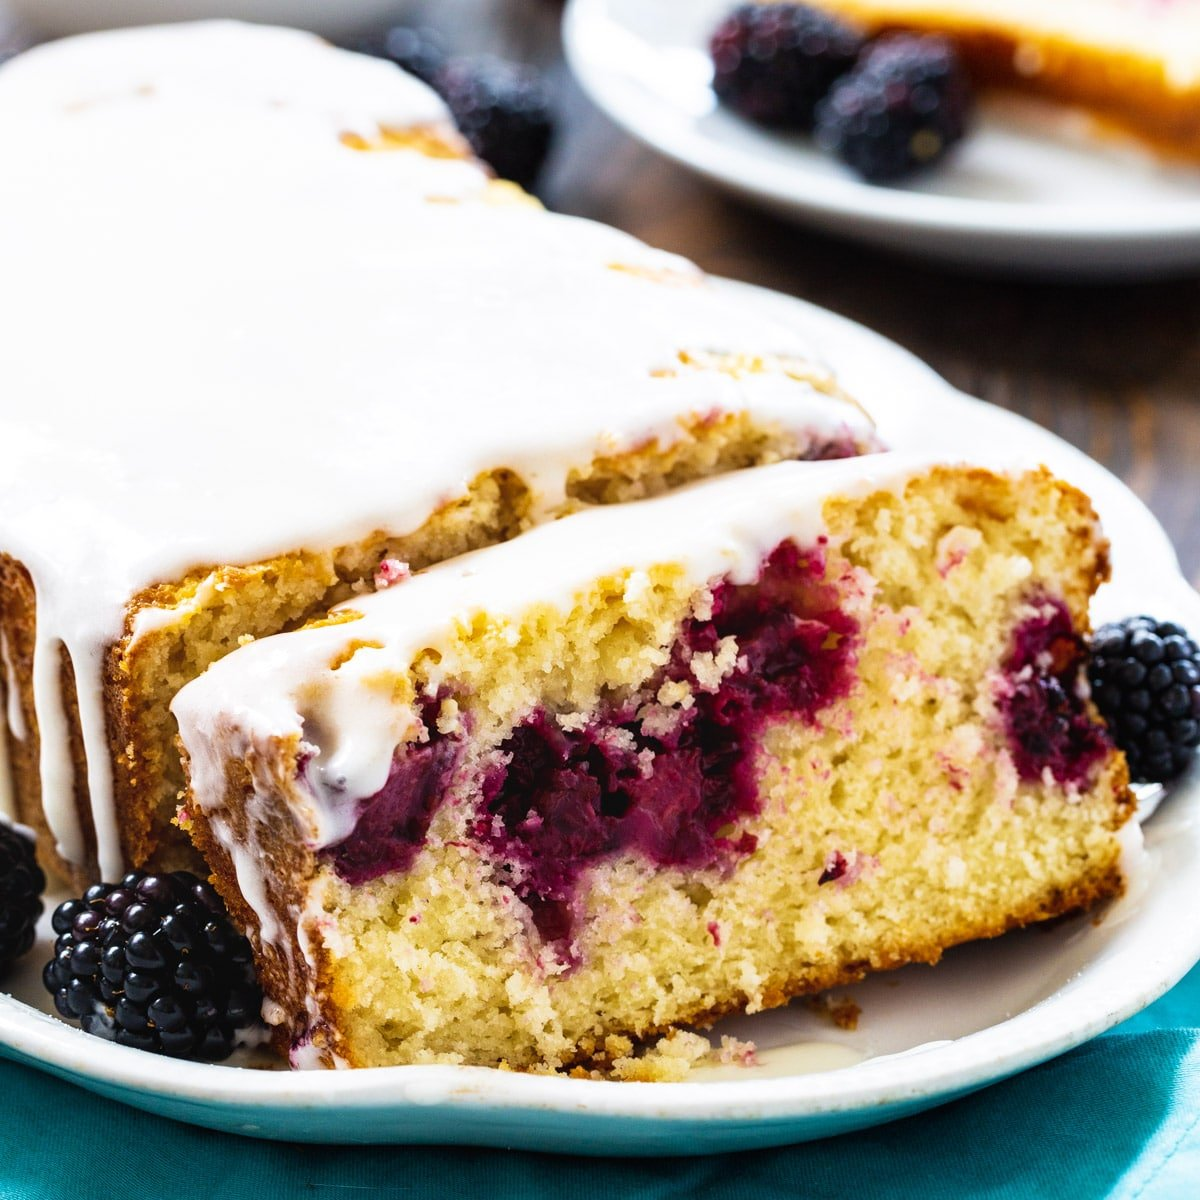 Blackberry Buttermilk Loaf Cake with a slice cut.